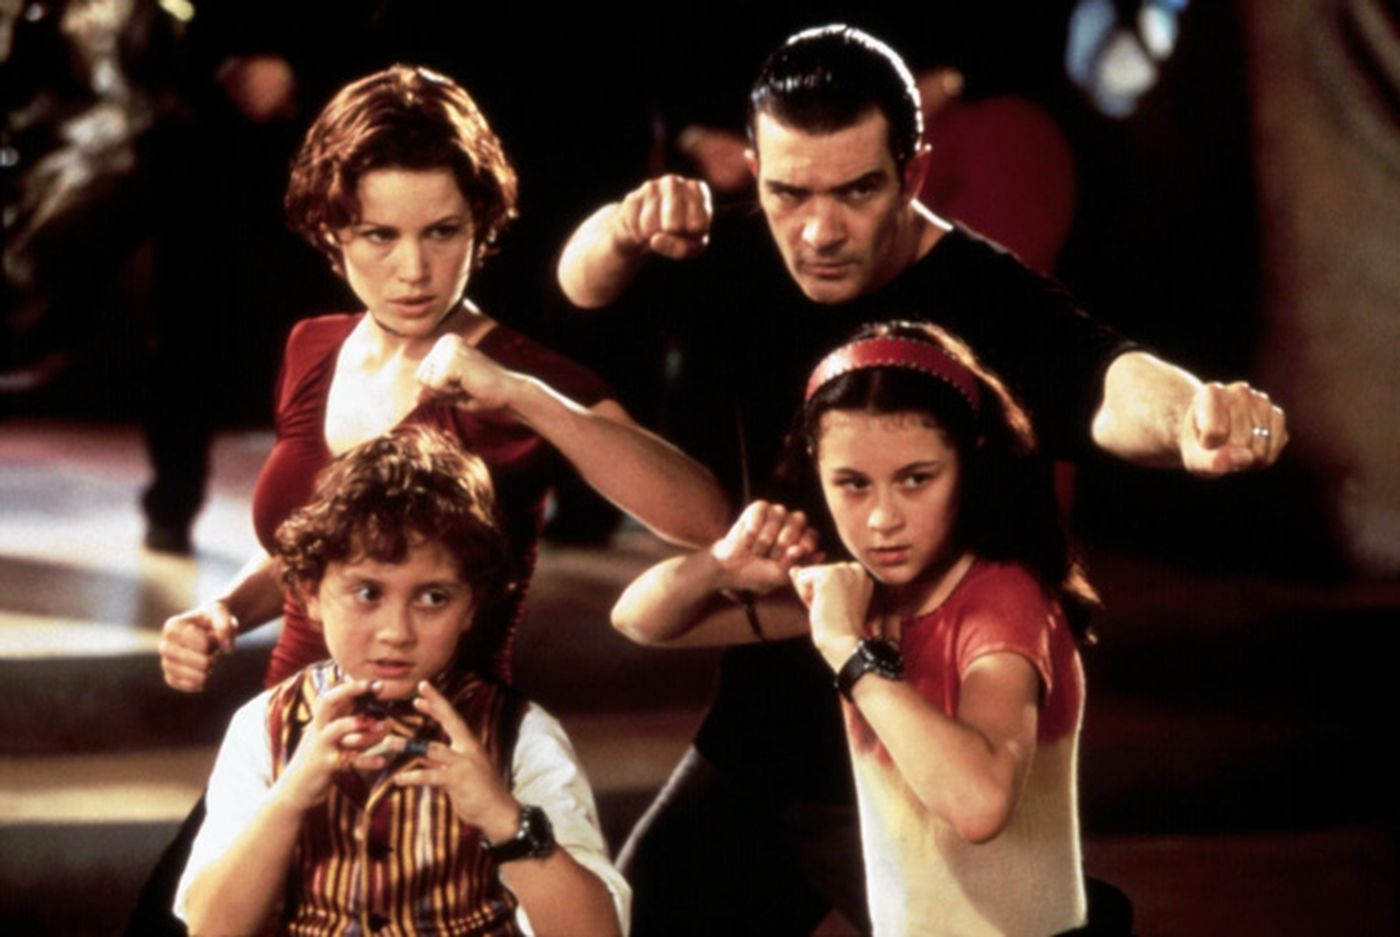 The Cortez Family - (l to r) (back) Parents Carla Gugino, Antonio Banderas (front) the Spy Kids - Daryl Sabara, Alexa Vega in Spy Kids (2001)